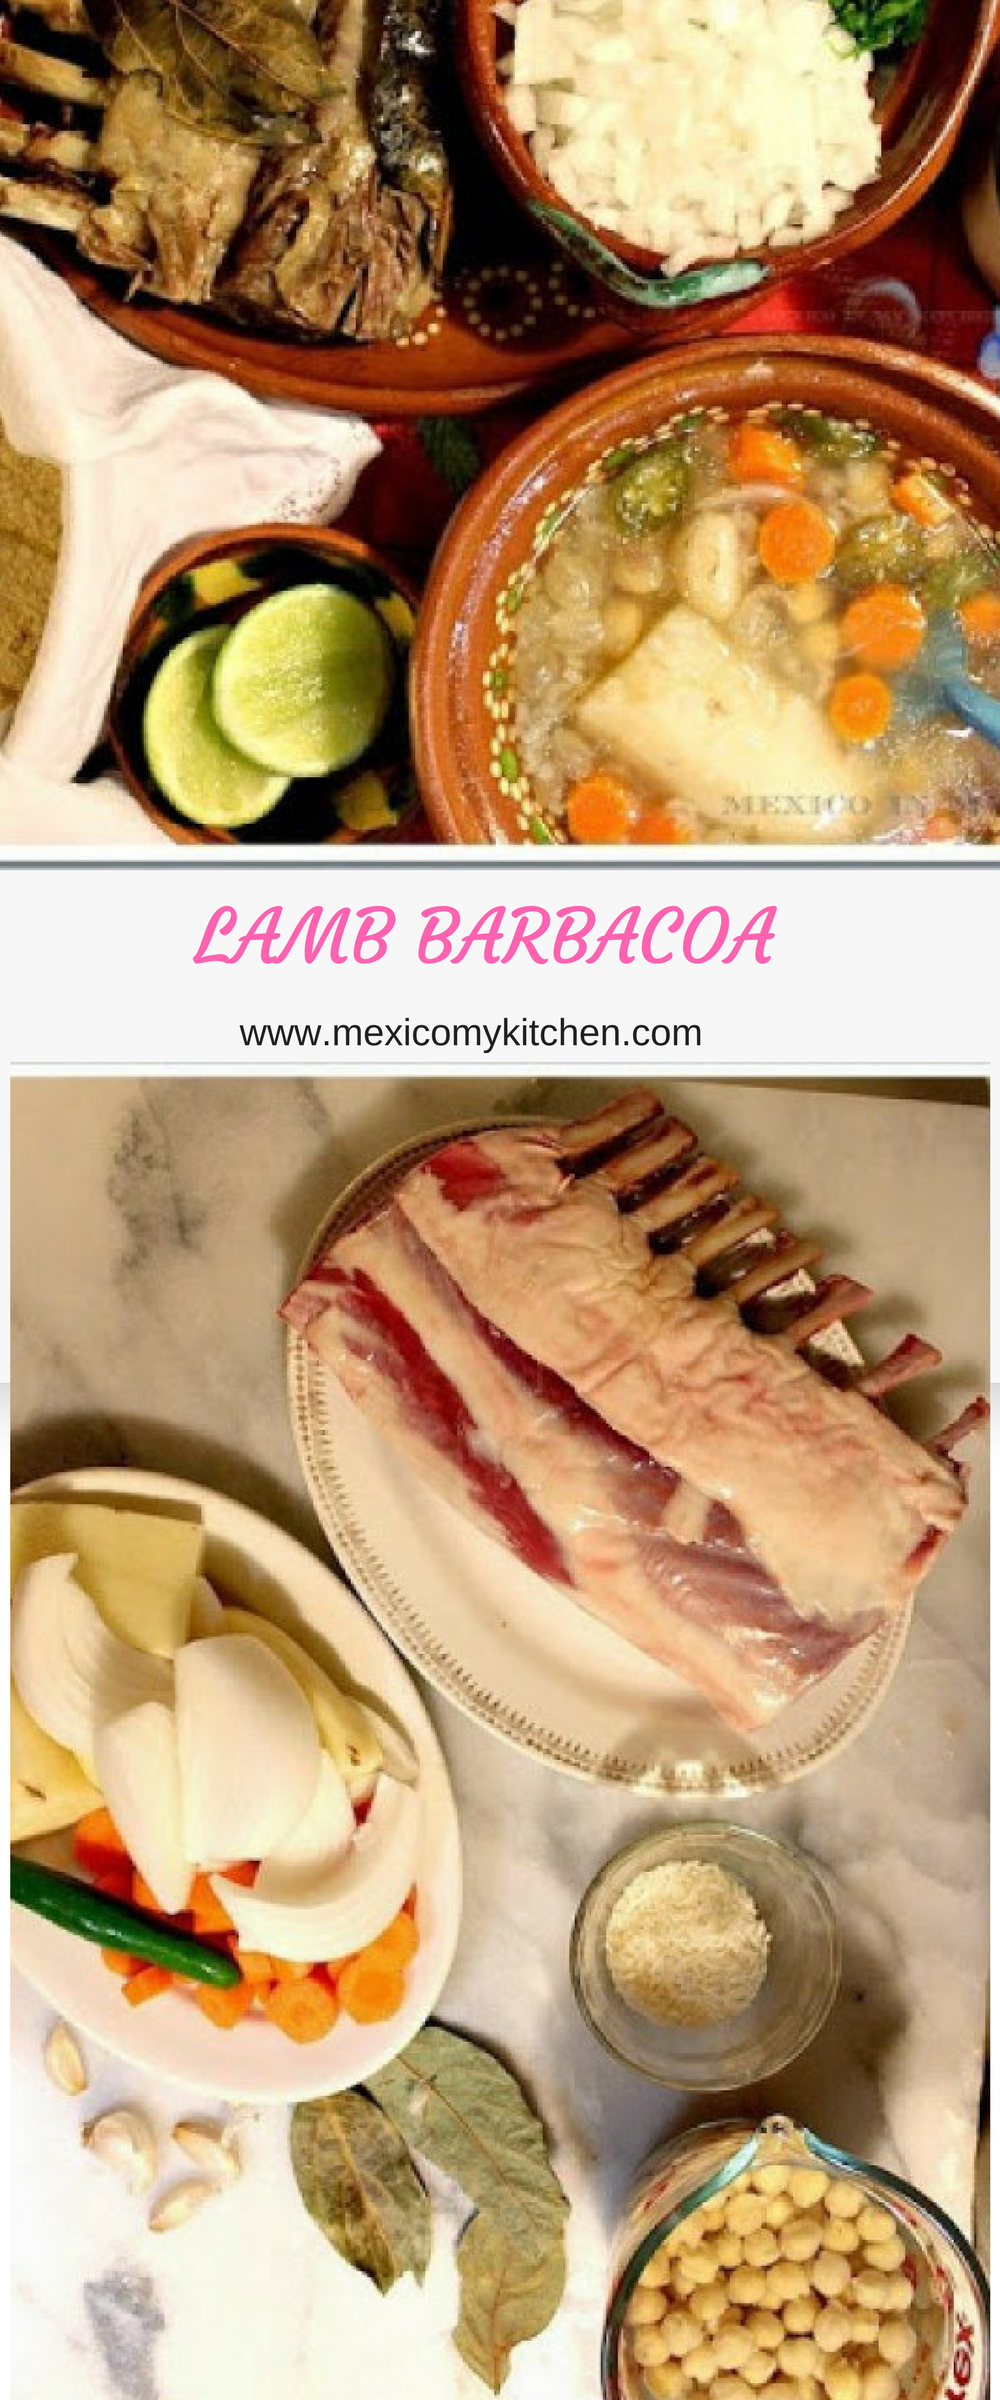 Barbacoas Sunday Lamb Barbacoa